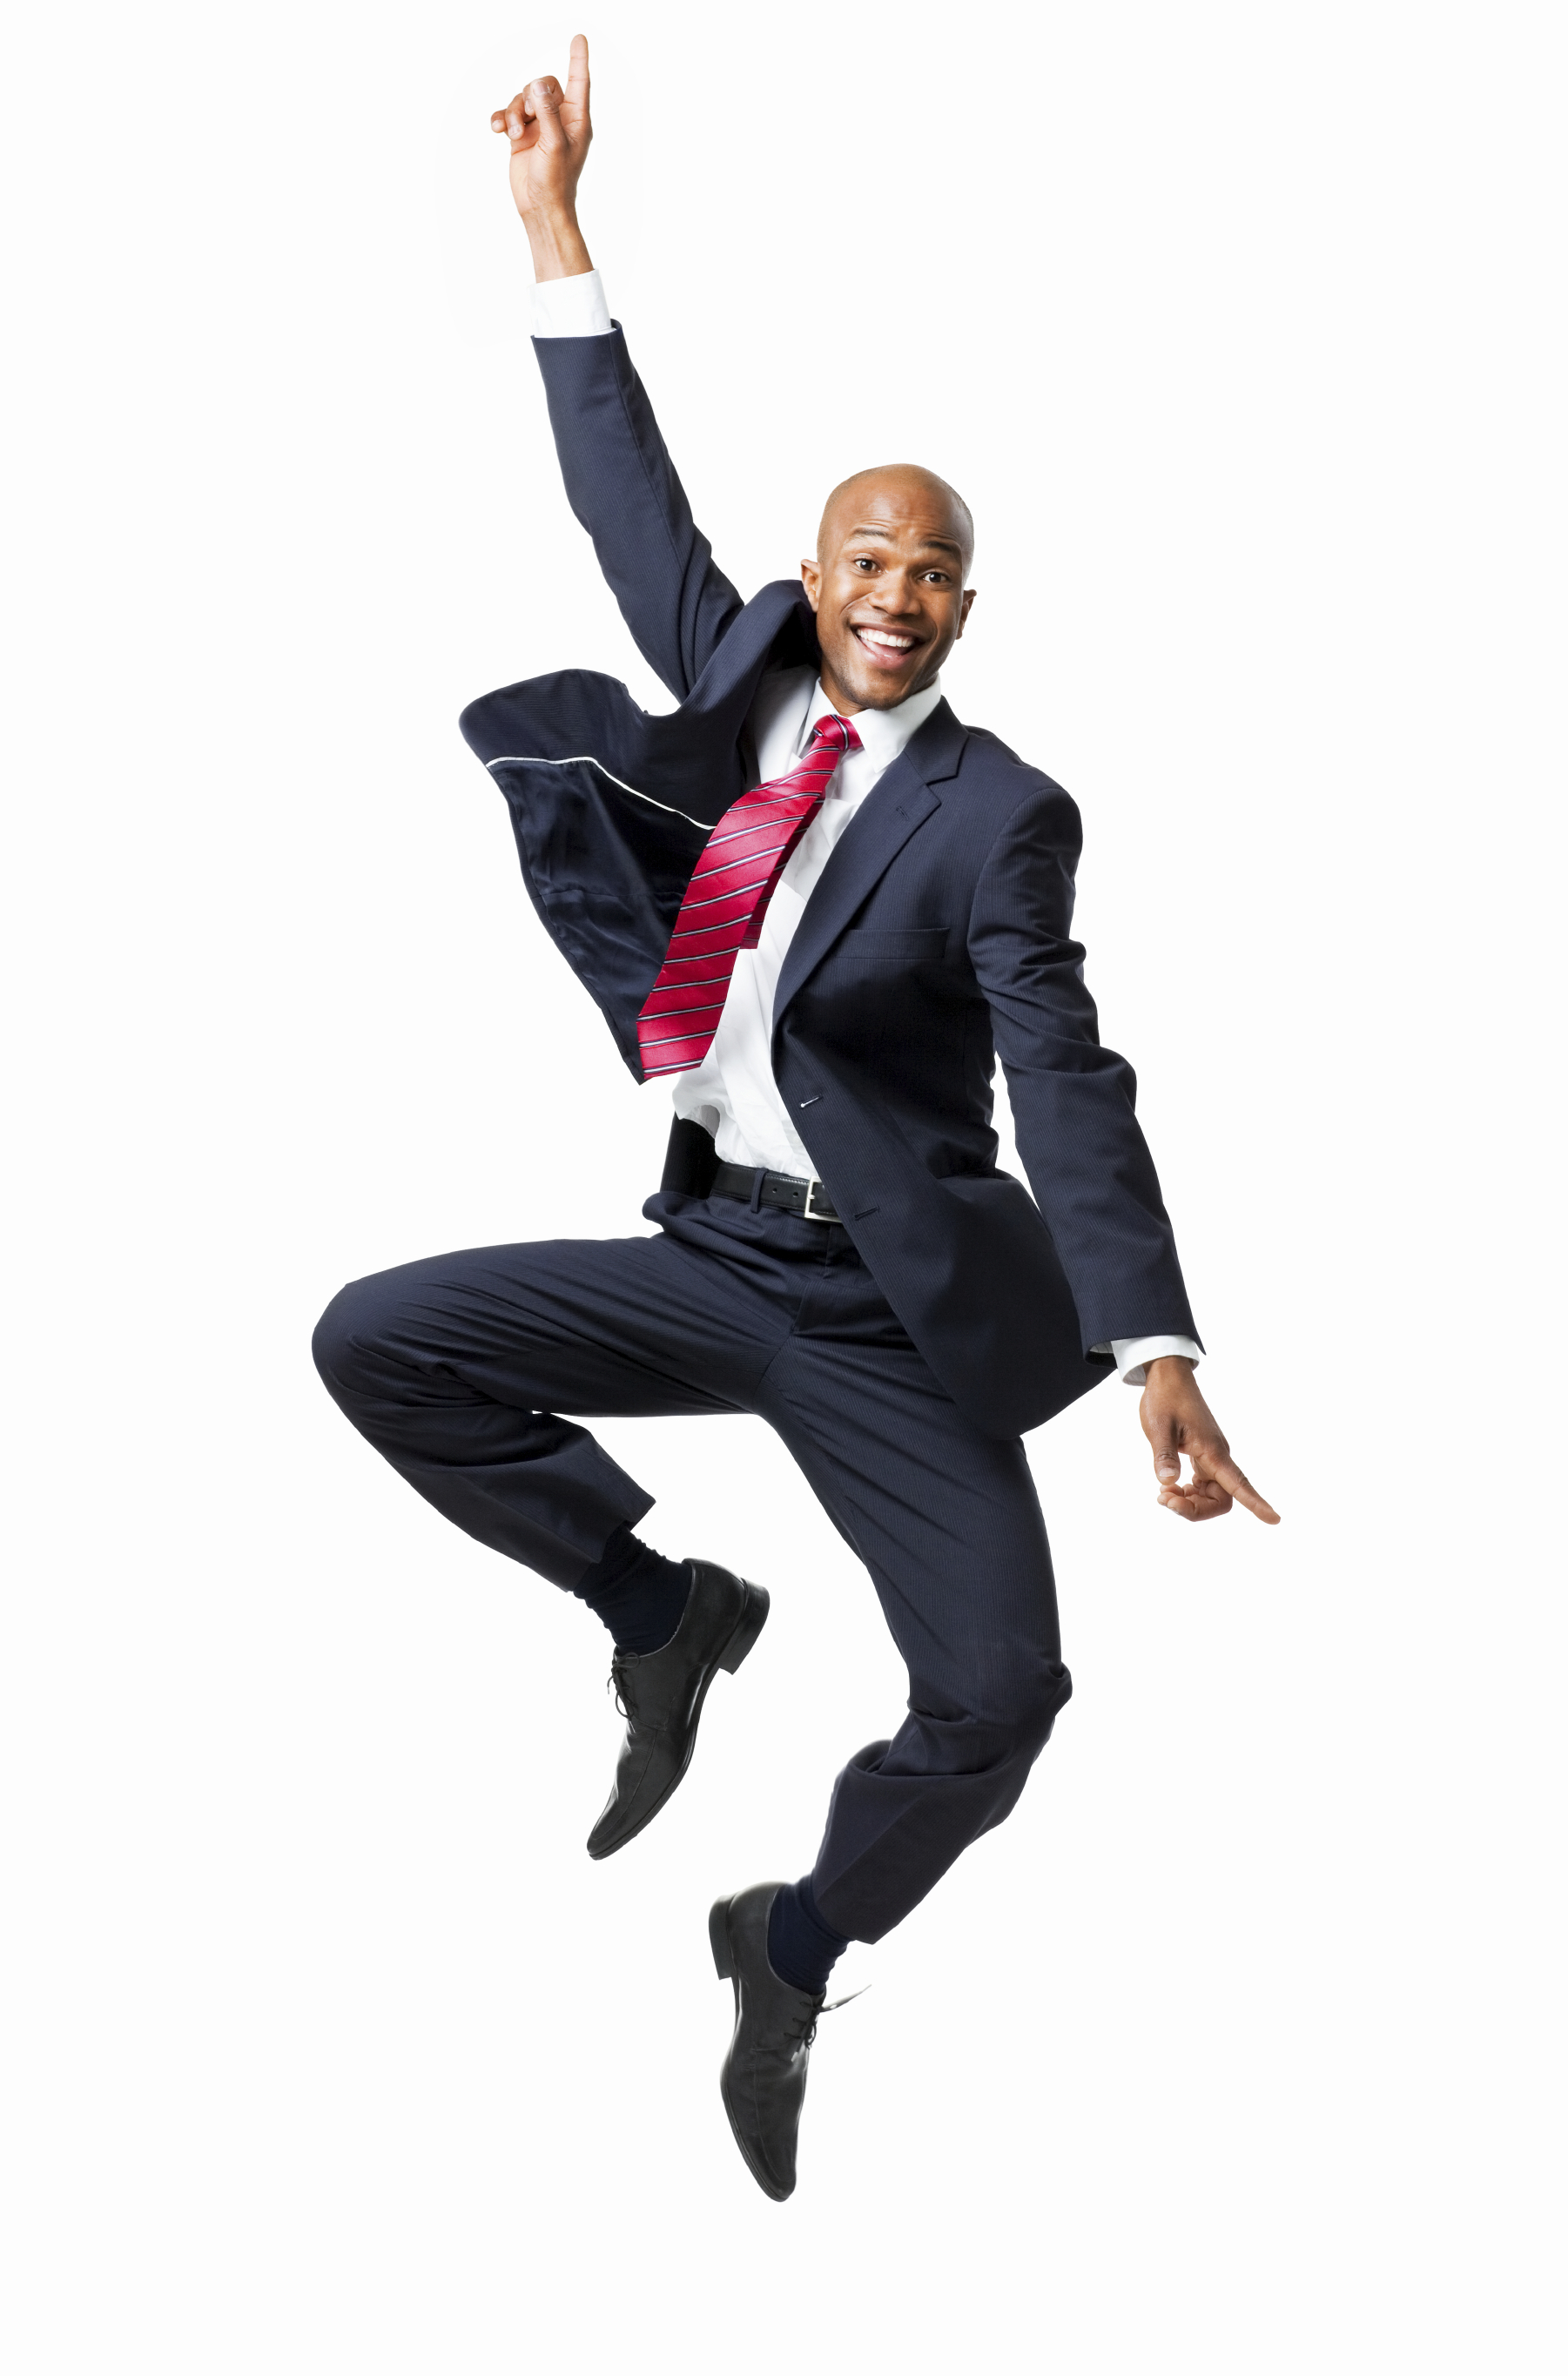 Businessman Excitedly Jumping In The Air - Isolated - Man Jumping For Joy PNG